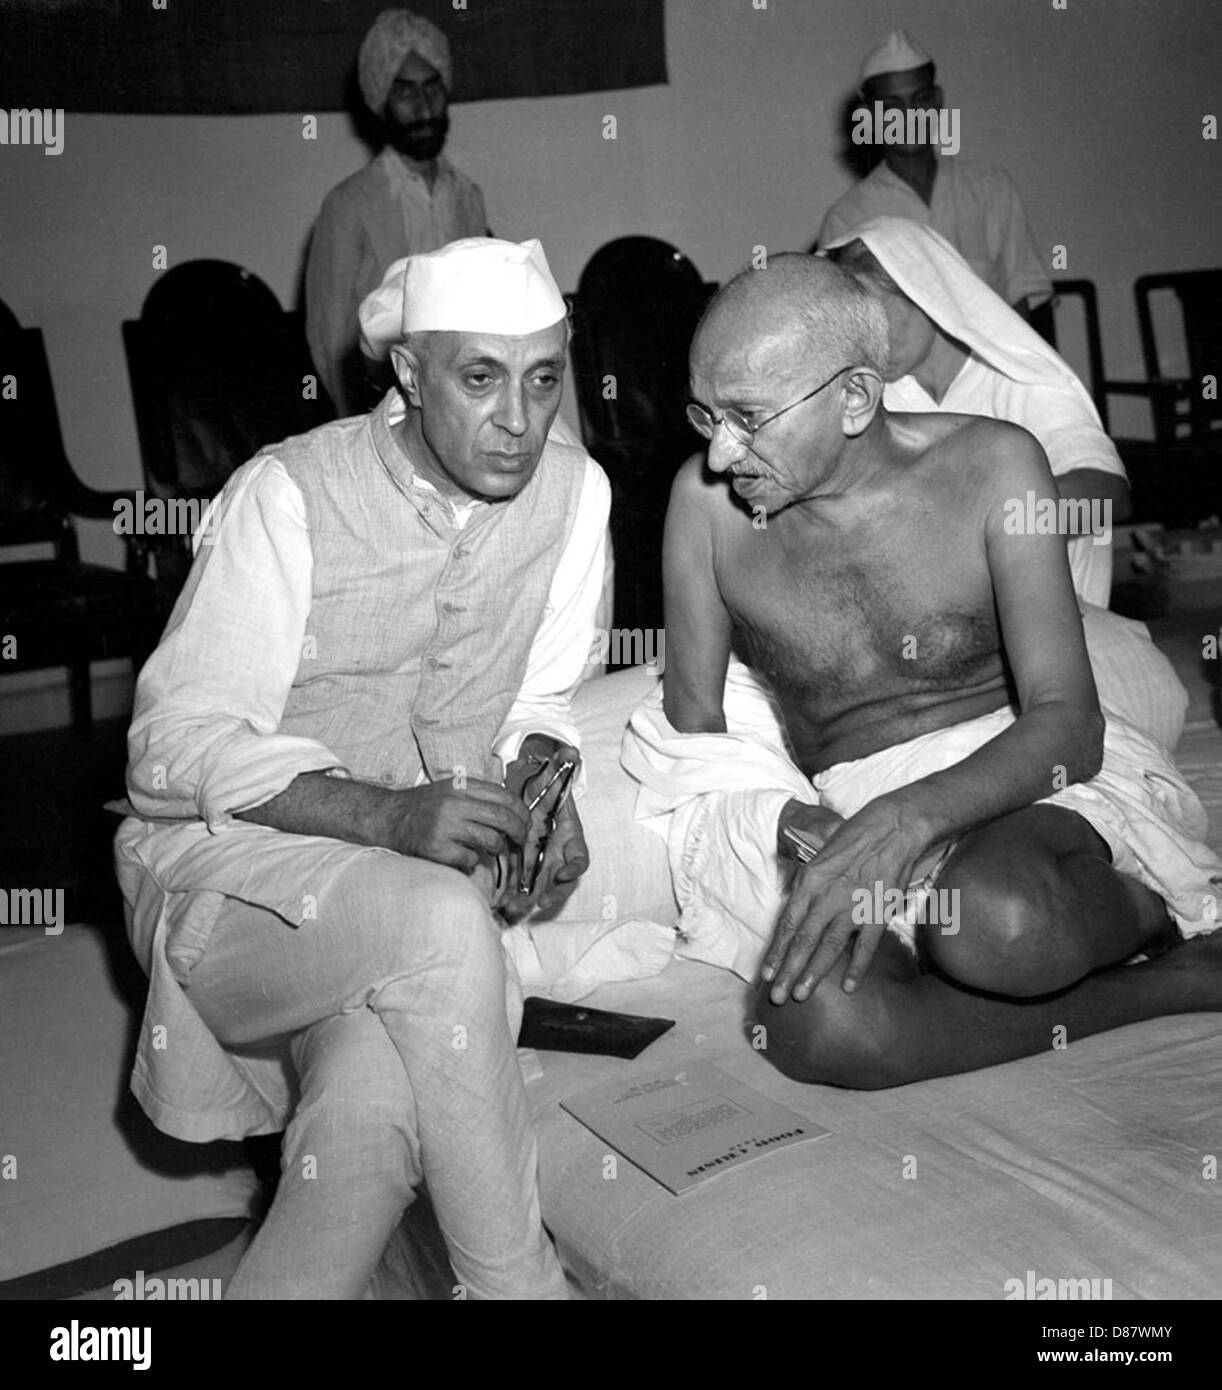 JAWAHARLAL NEHRU at left with Mahatma Gandhi, Indian independence leaders, in 1942 - Stock Image